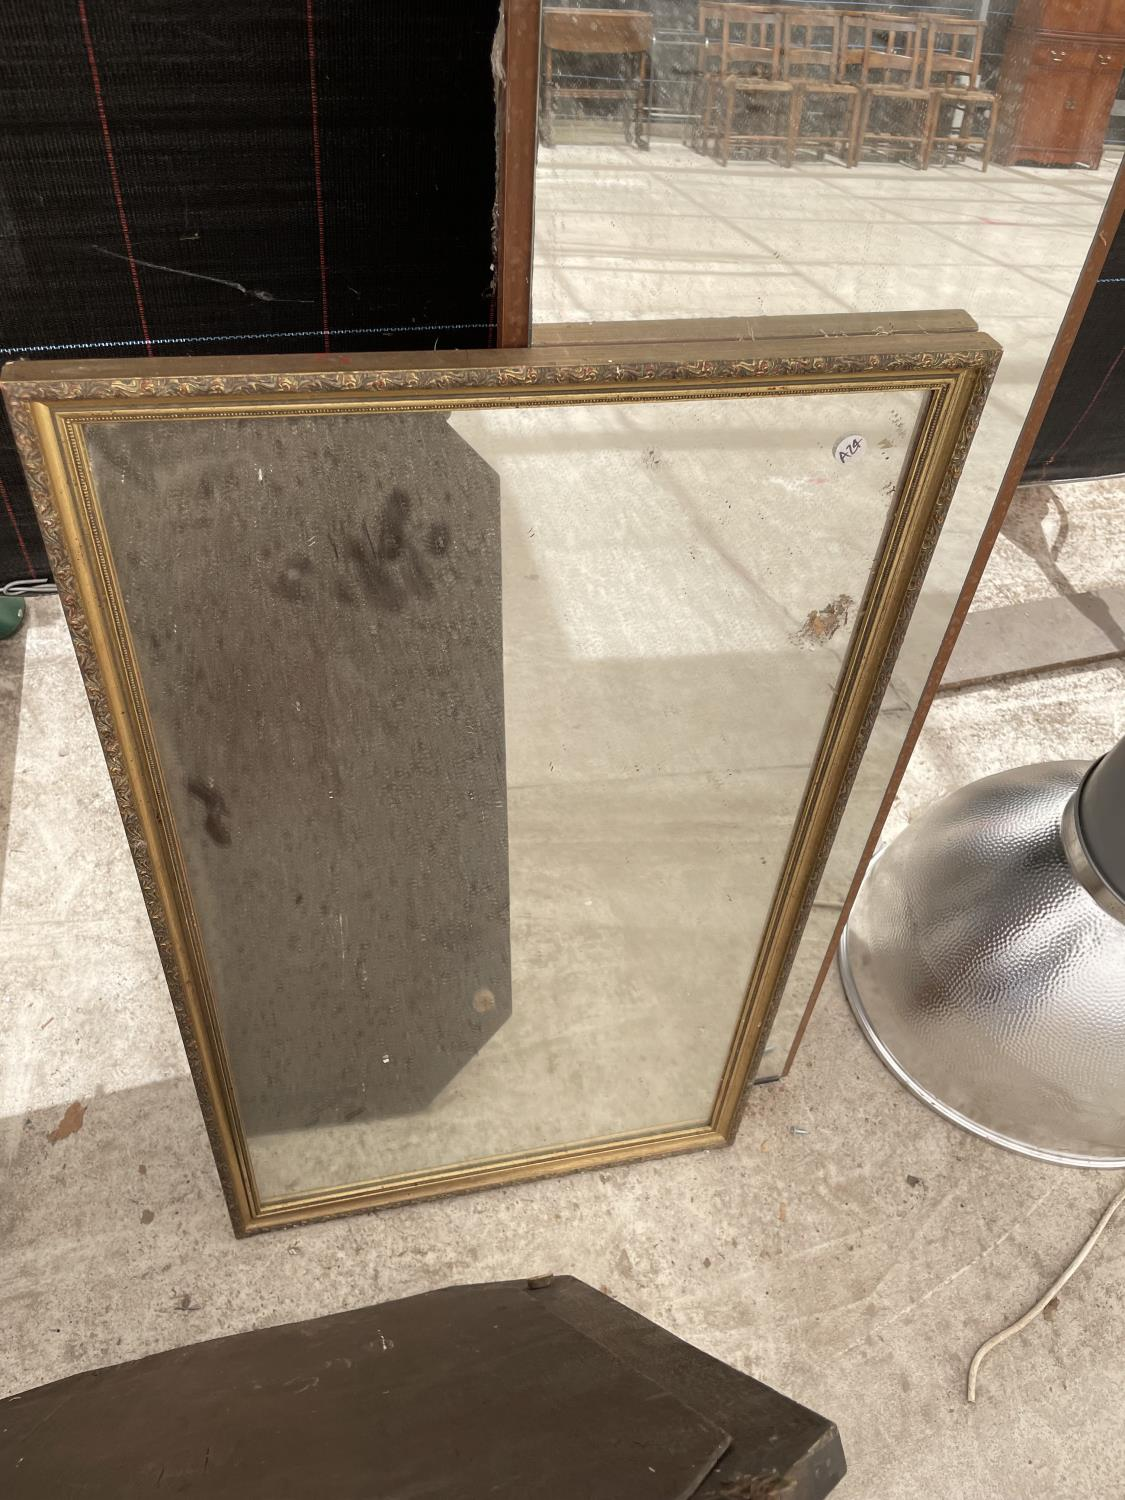 A GILT FRAMED MIRROR AND A FURTHER DECORATIVE WOODEN FRAMED BEVELED EDGE MIRROR AND A FULL LENGTH - Image 3 of 6